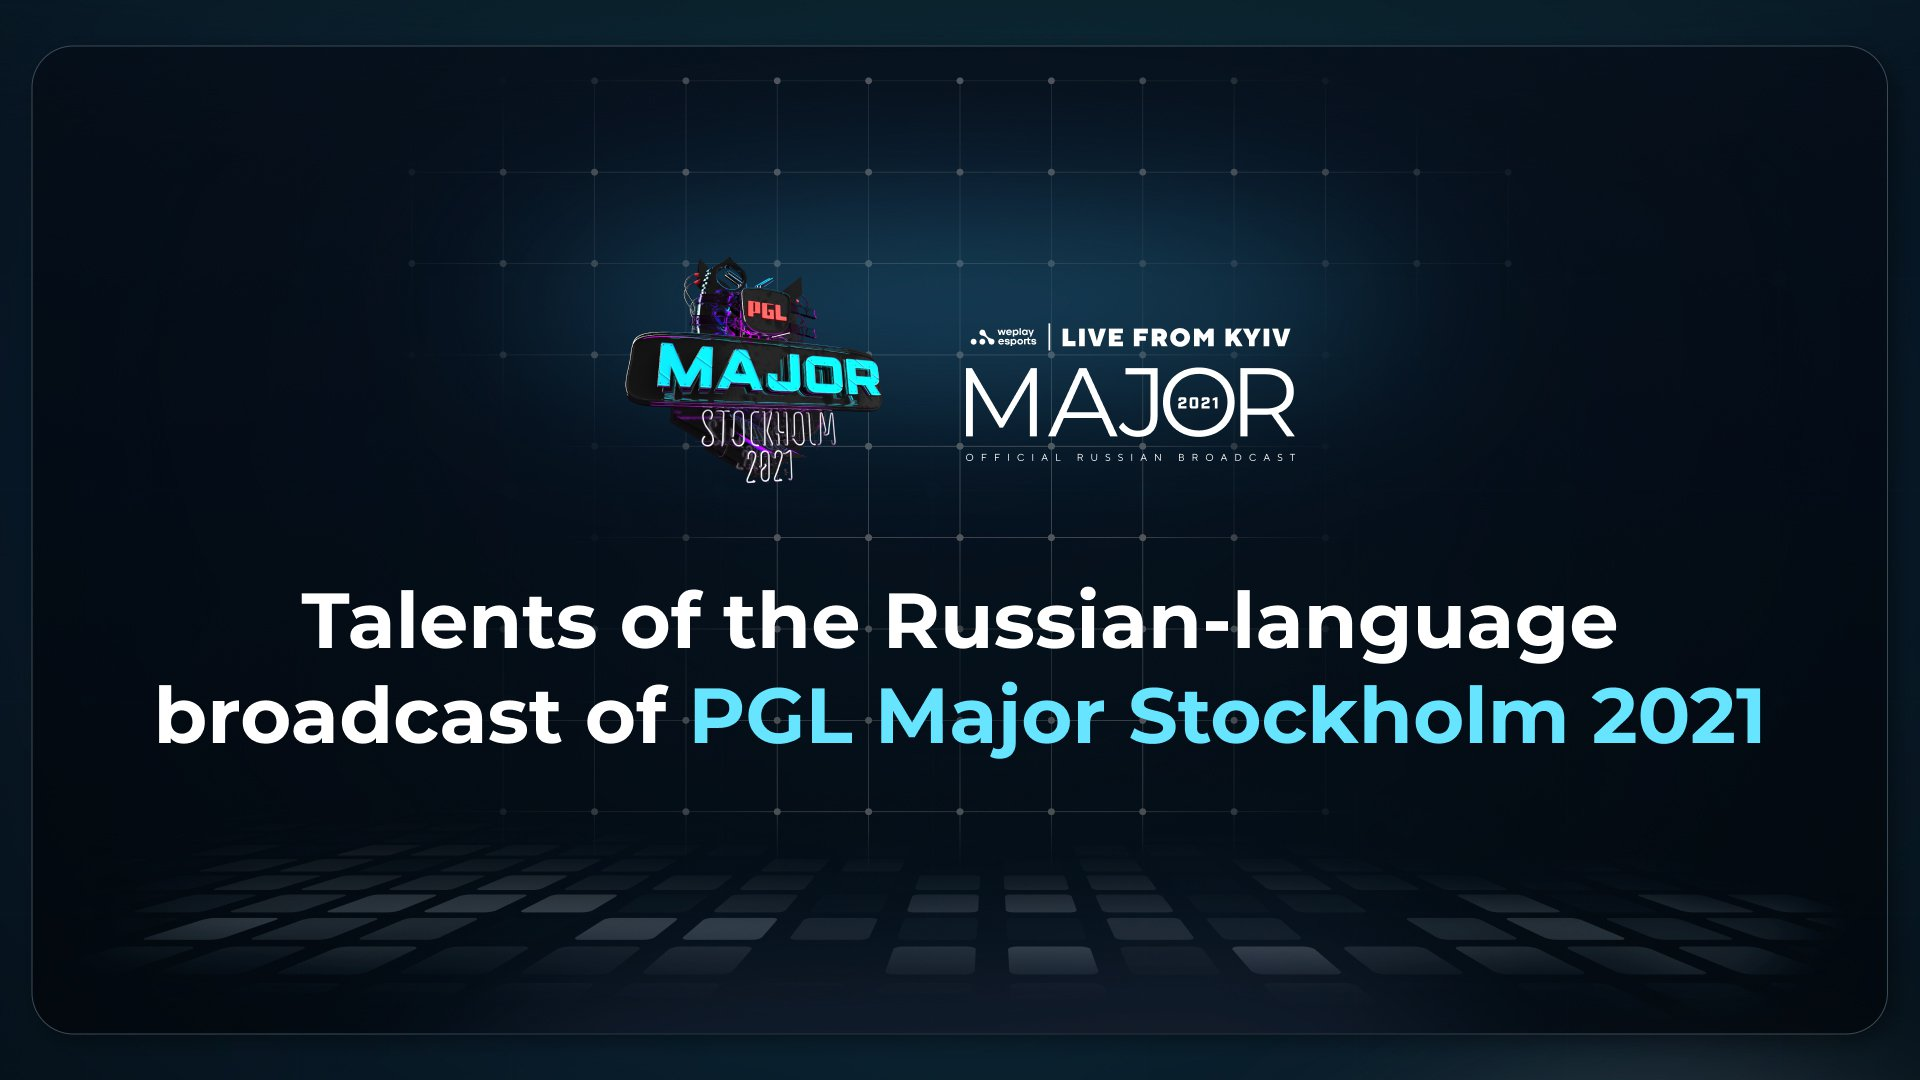 Talents of the Russian-language broadcast of the PGL Major Stockholm 2021 are announced. Image: WePlay Holding